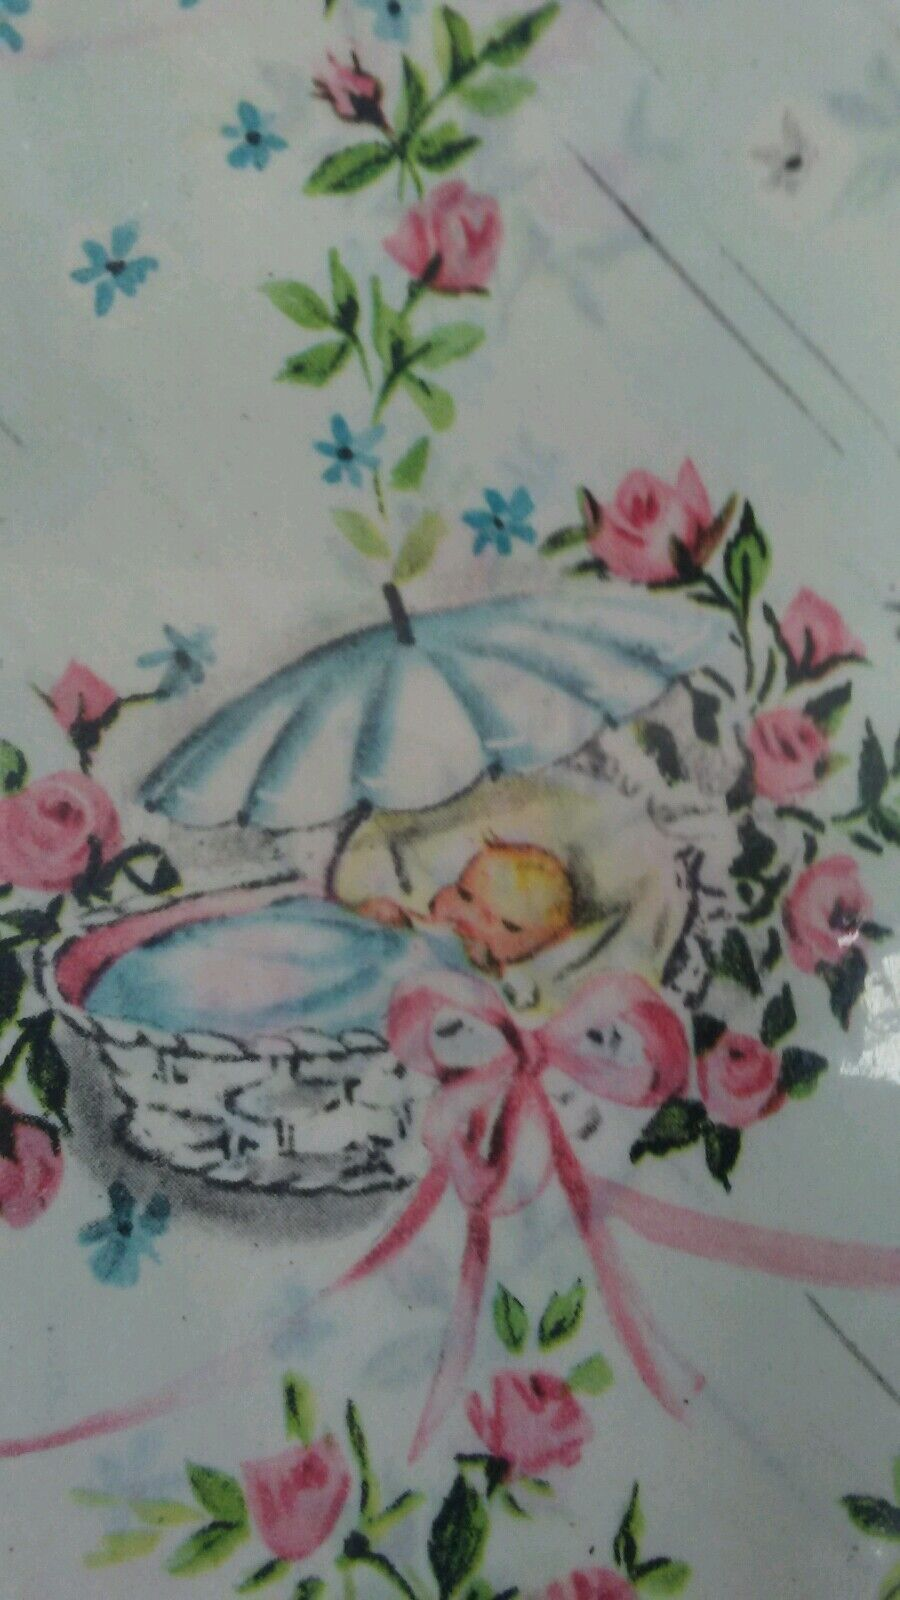 Greeting cards paper ephemera collectables vintage baby shower gift wrap kristyandbryce Gallery